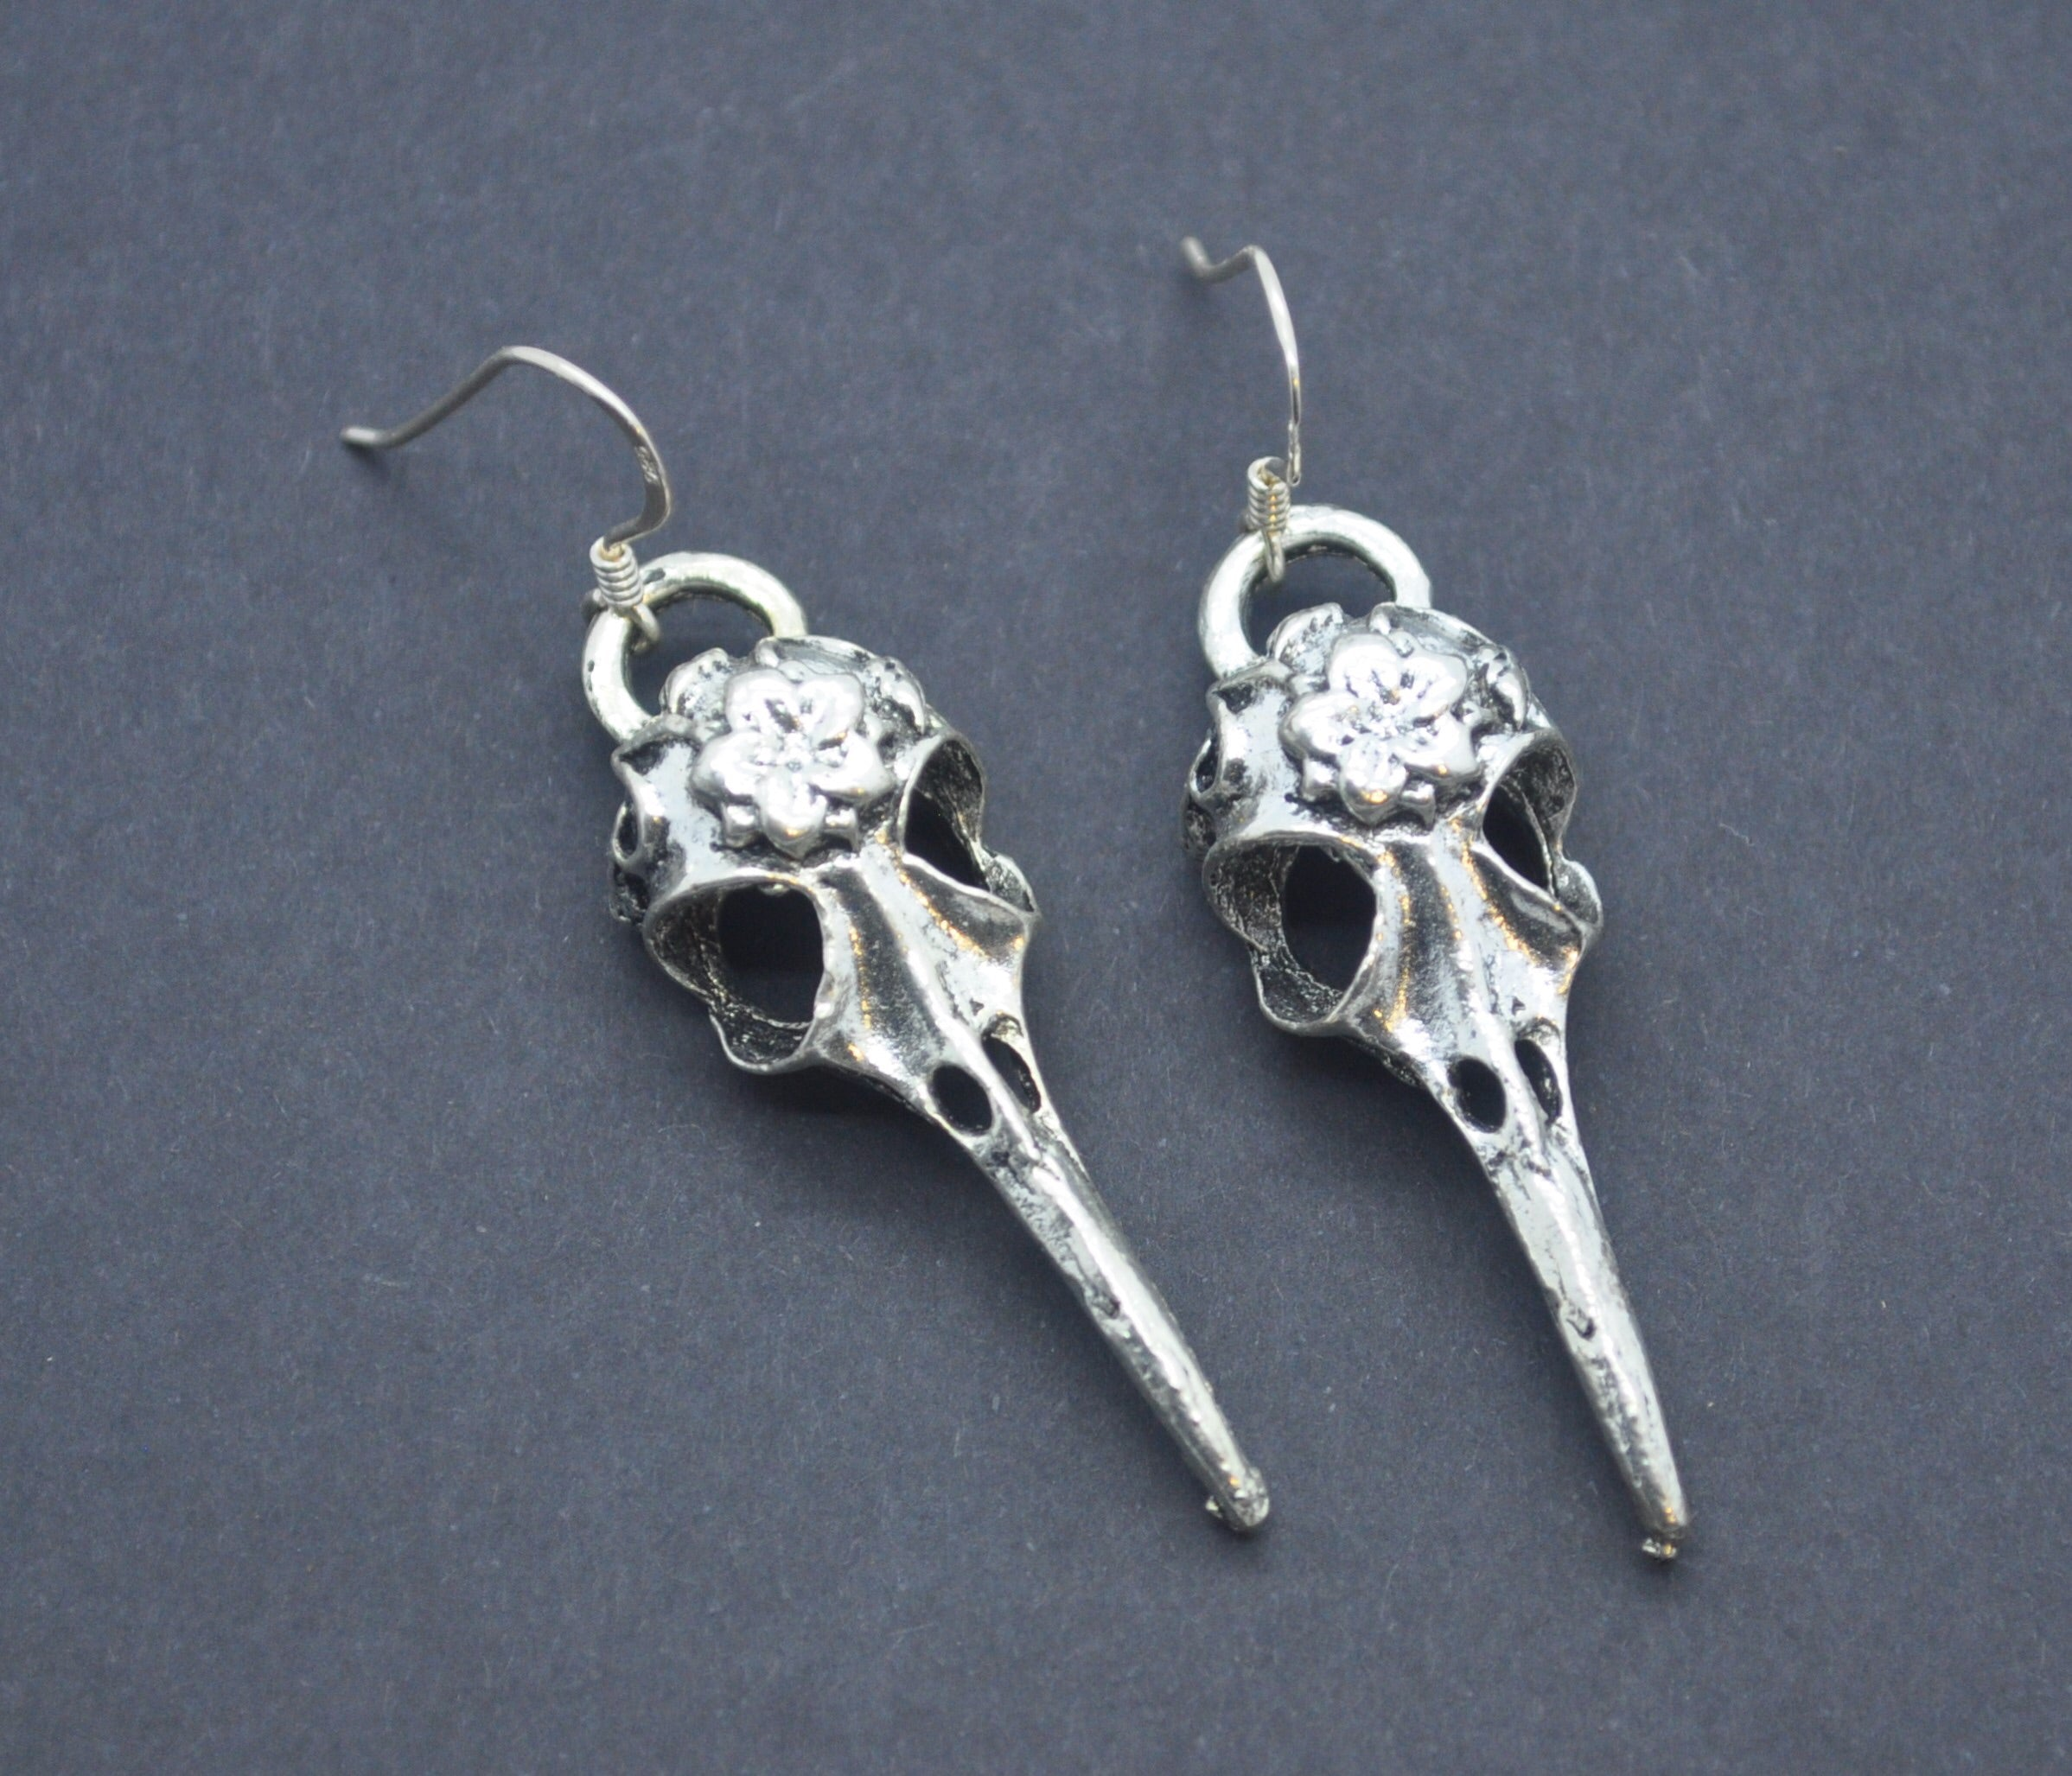 Dark Garden Earrings